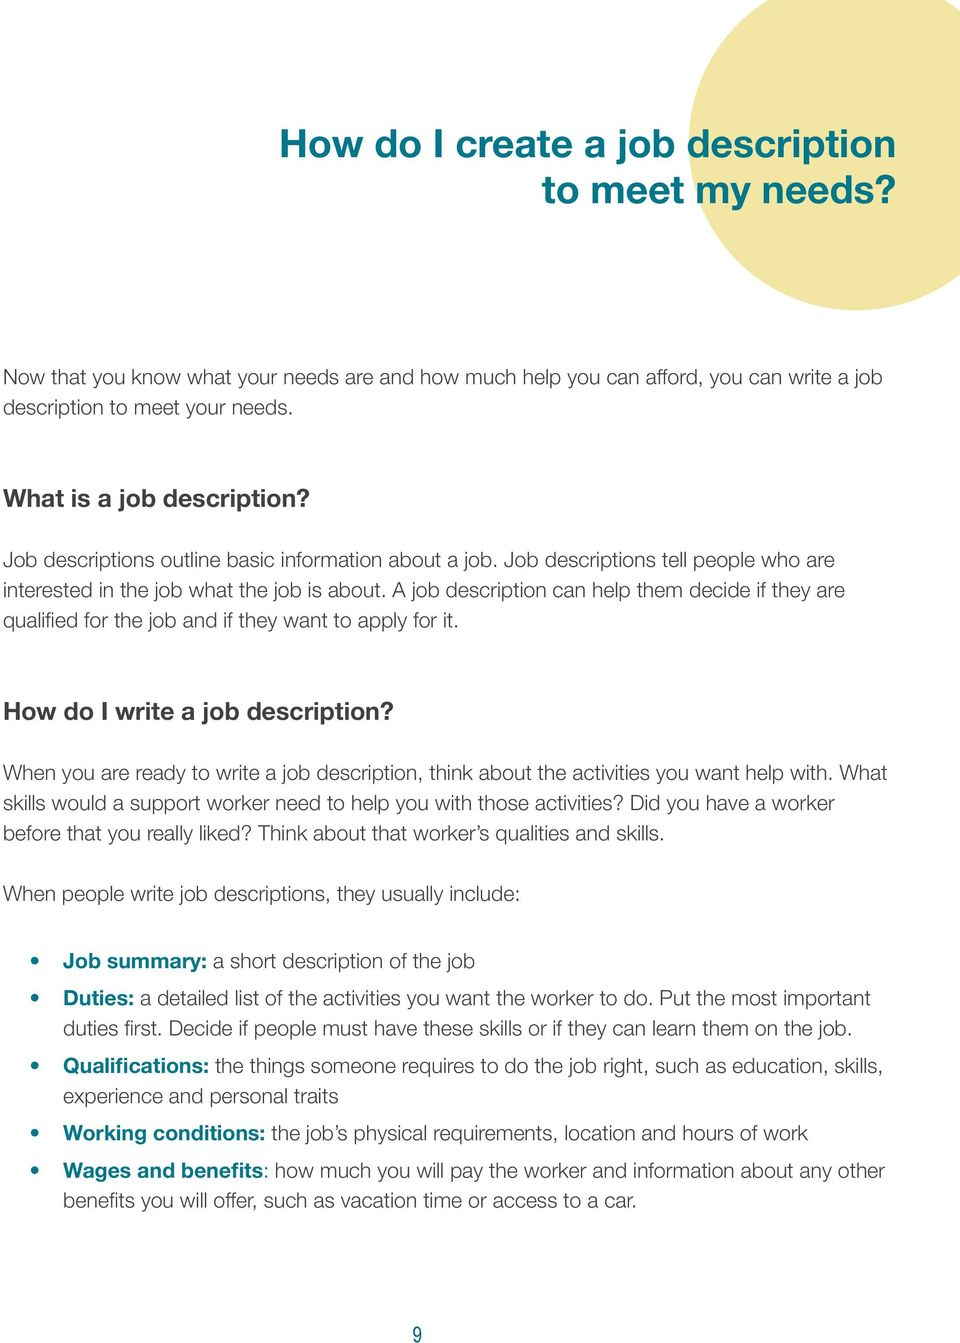 A job description can help them decide if they are qualified for the job and if they want to apply for it. How do I write a job description?